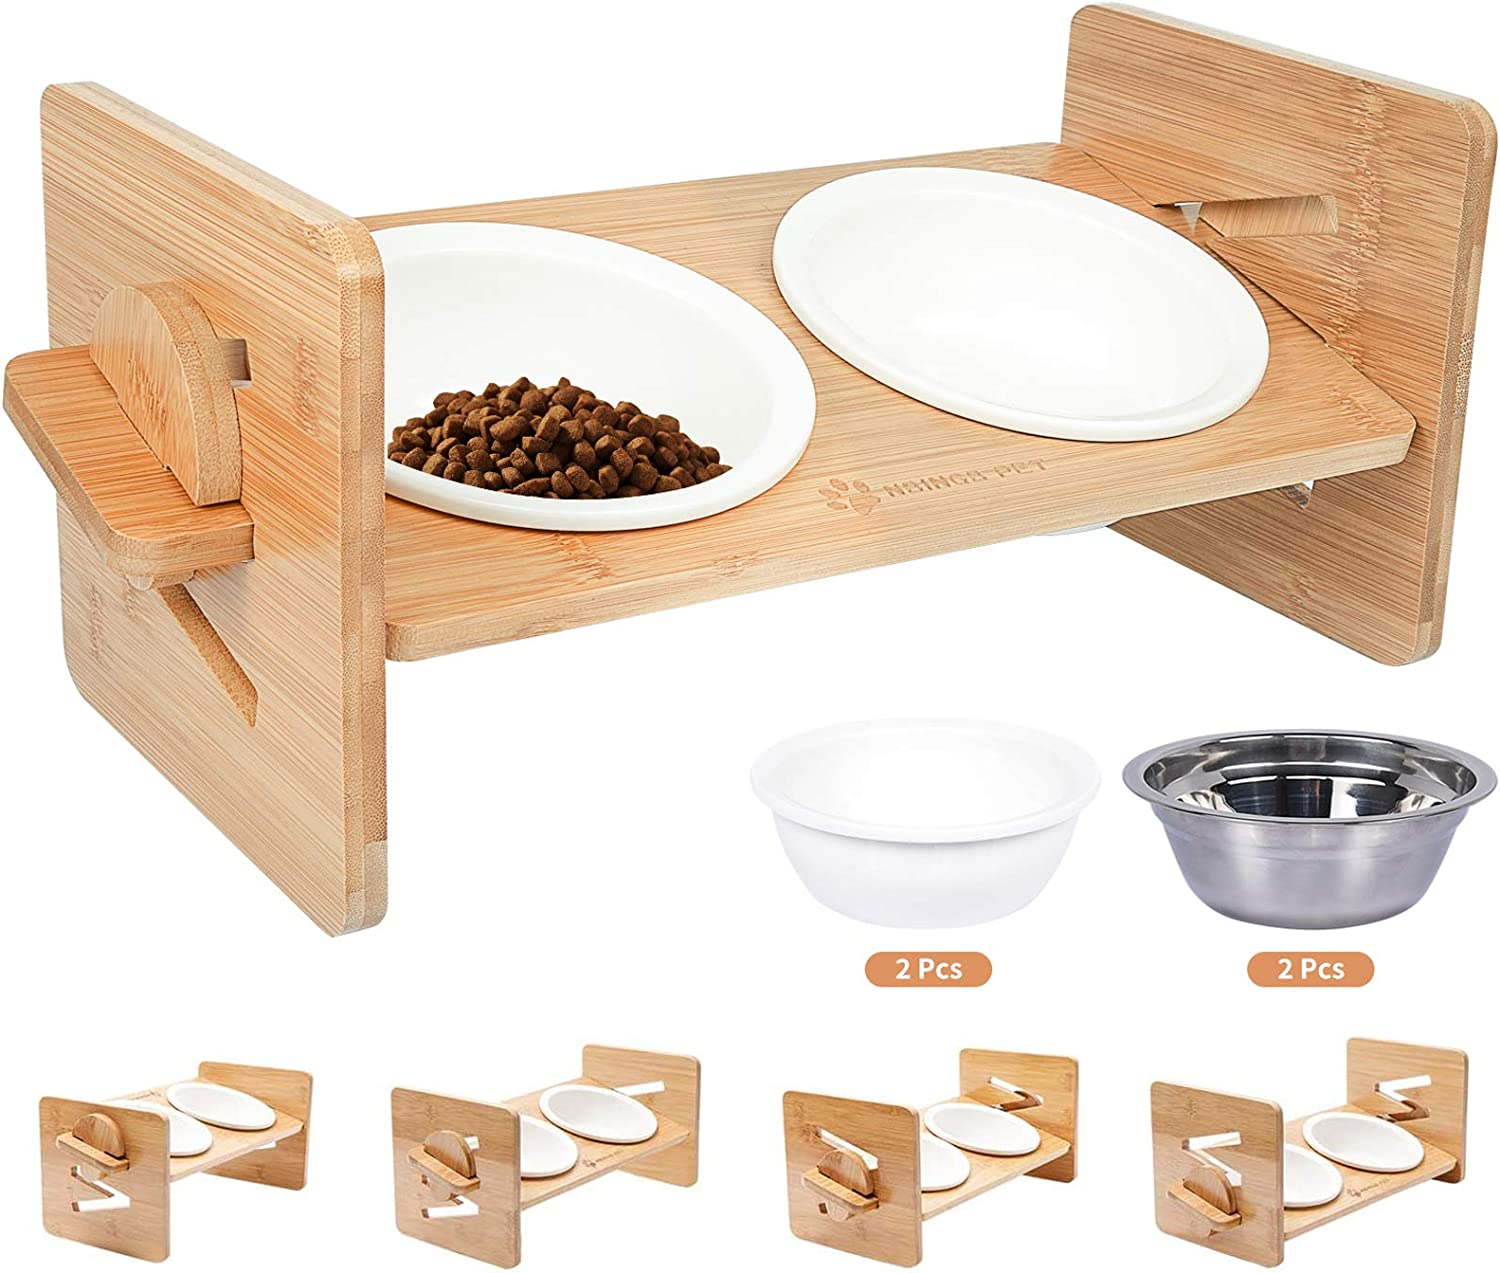 Raised Pet Bowl for Cats and Small Dogs, Adjustable Elevated Dog Cat Food and Water Bowl Stand Feeder with Extra Stainless Steel Bowls (Small to Medium with 4 Bowls)